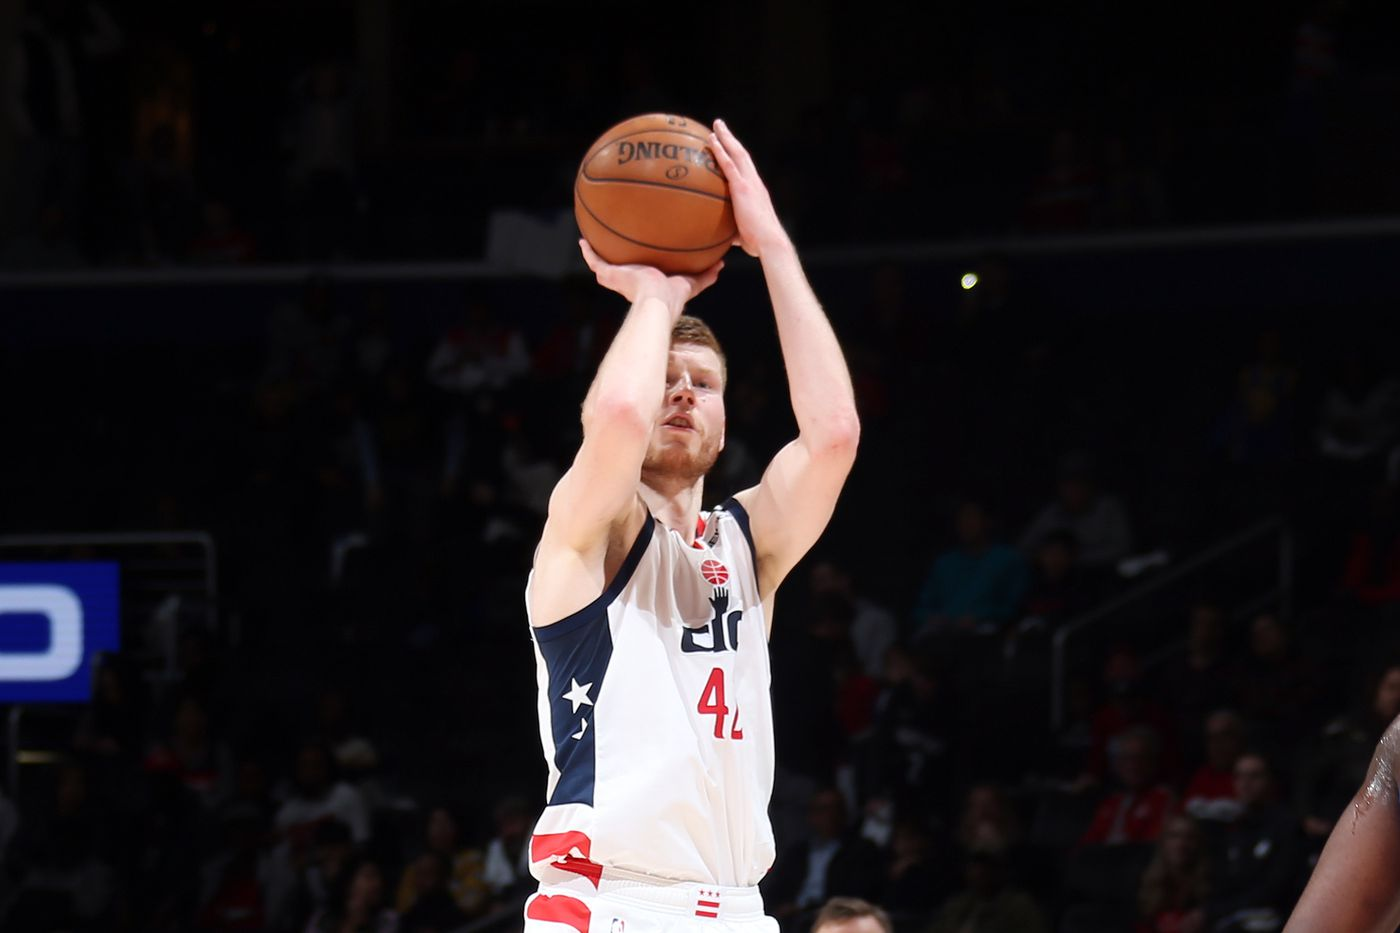 Wizards Davis Bertans to take part in 2020 NBA 3 point contest 1400x933